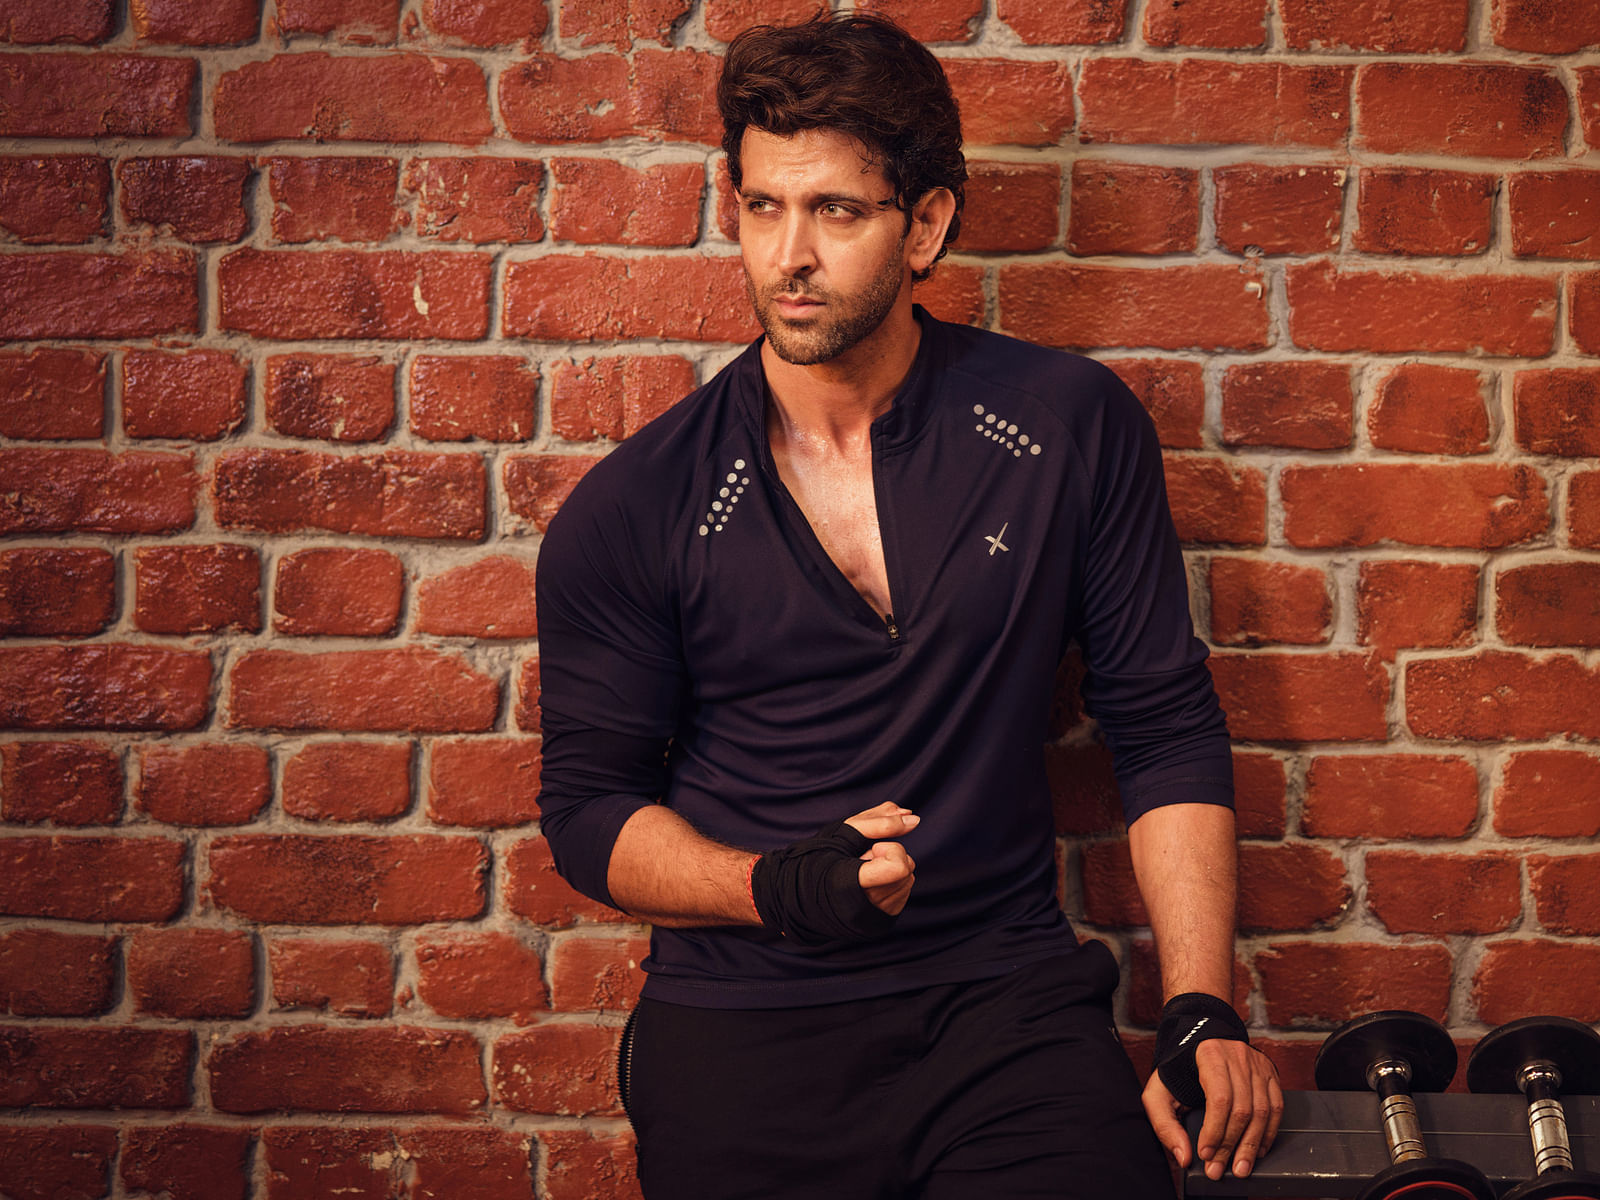 Hrithik Roshan's fitness advice - 'Strive to become the best